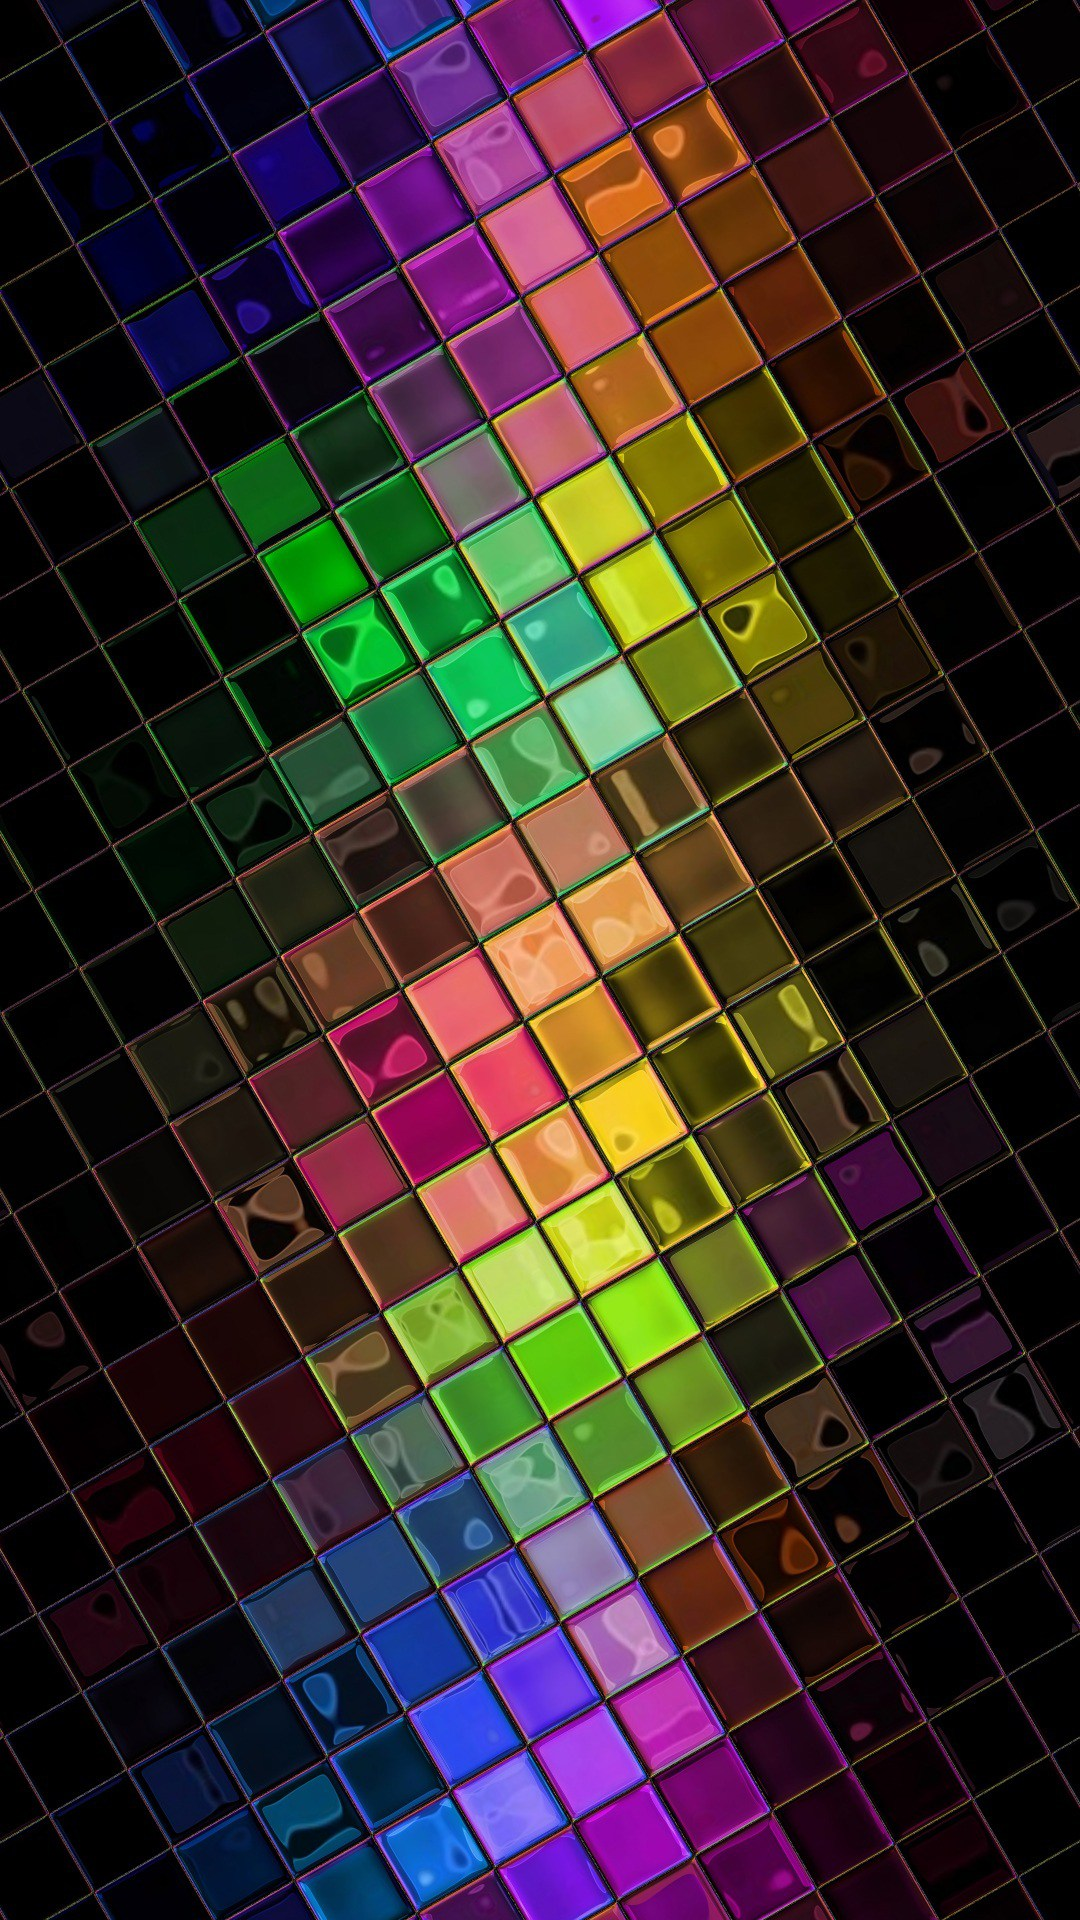 Free Download Squares Full Hd Wallpapers For Iphone 6 Plus 1080x1920 For Your Desktop Mobile Tablet Explore 50 Iphone 6 Plus Wallpapers Hd Iphone 6 Plus Wallpapers Download Cool